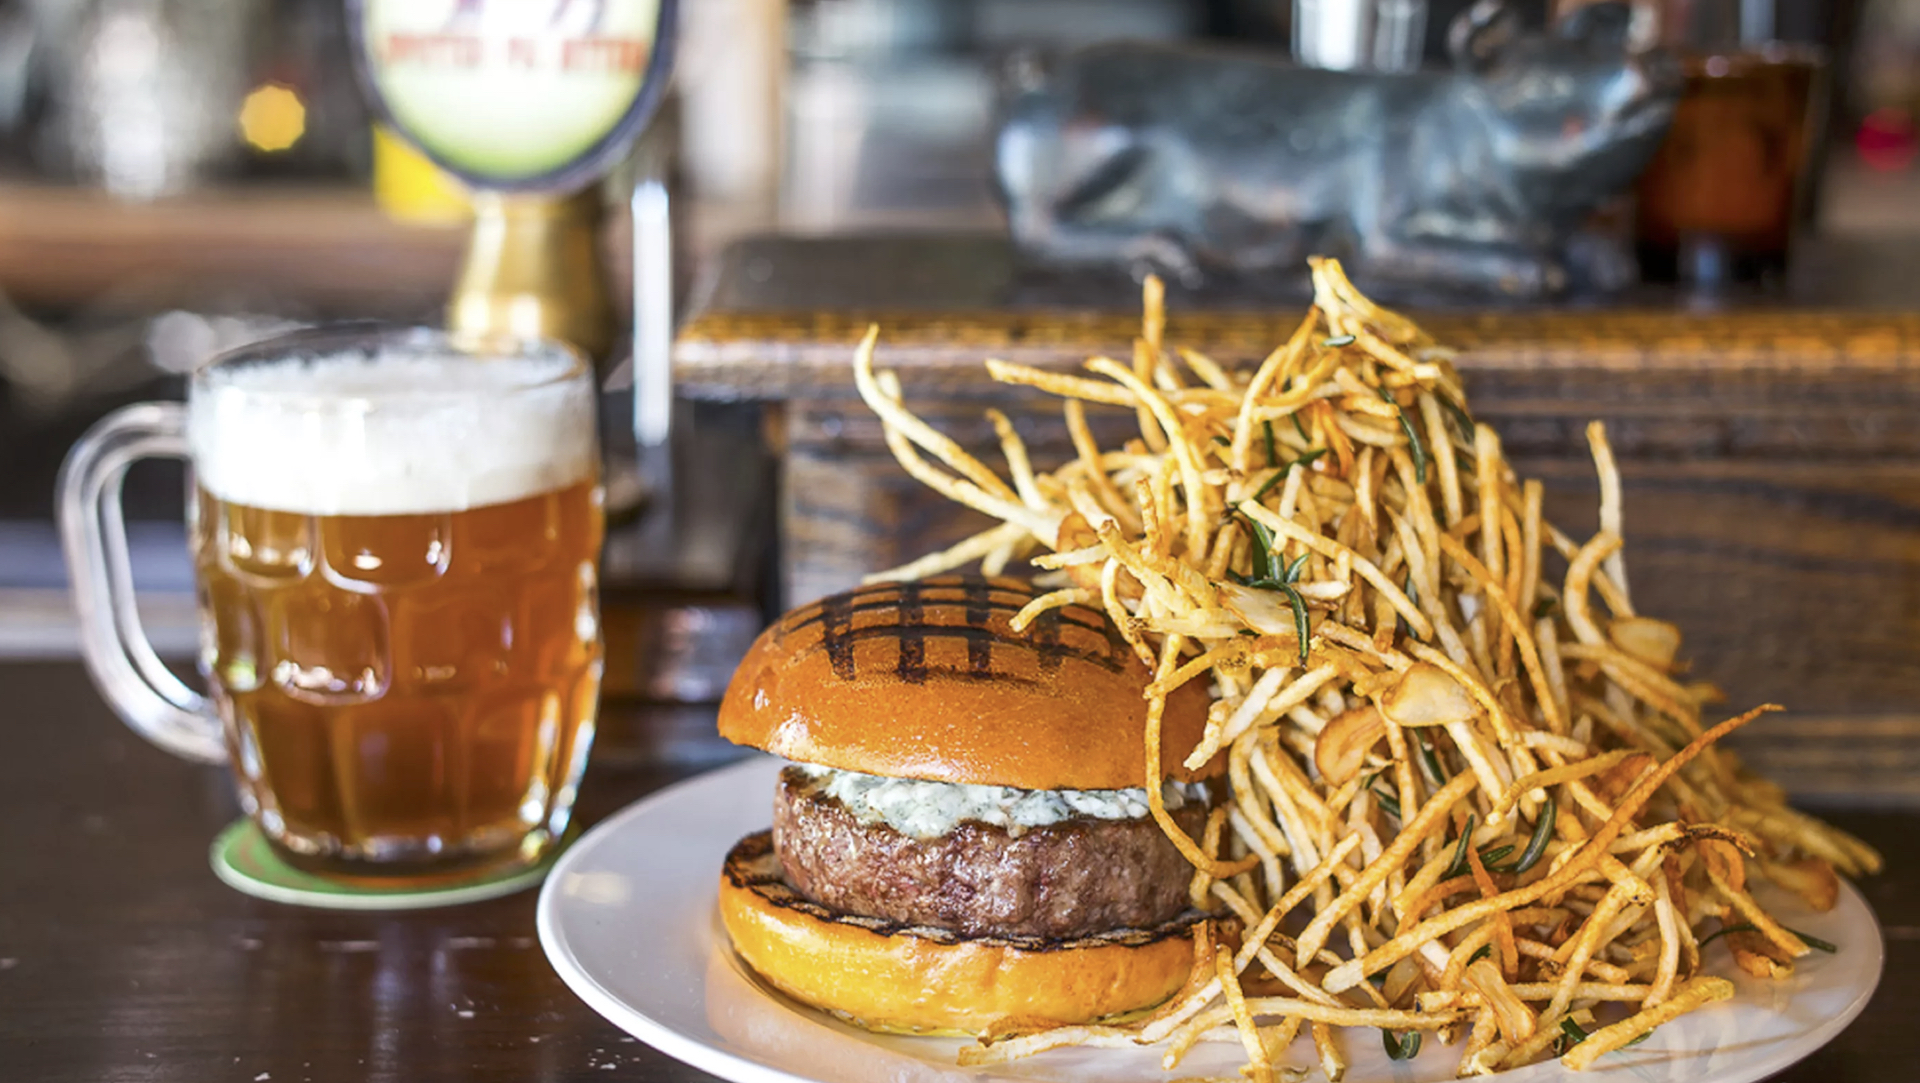 The famous Spotted Pig Burger. Source: Eater